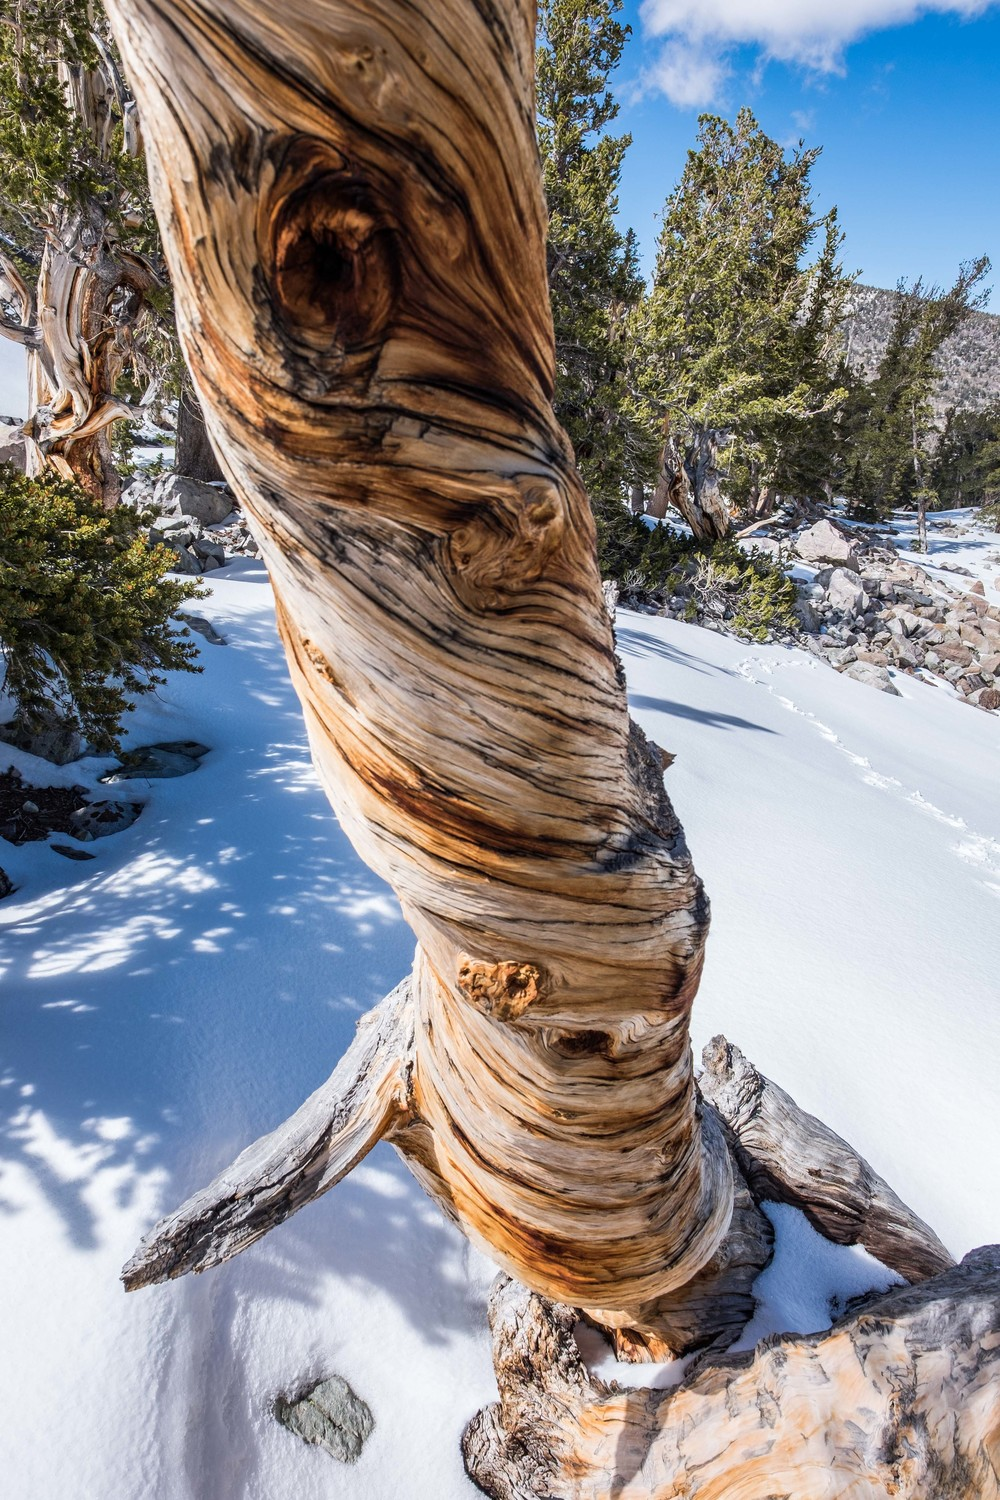 The oldest living non-clonal thing on the planet! The Bristlecone pine tree.